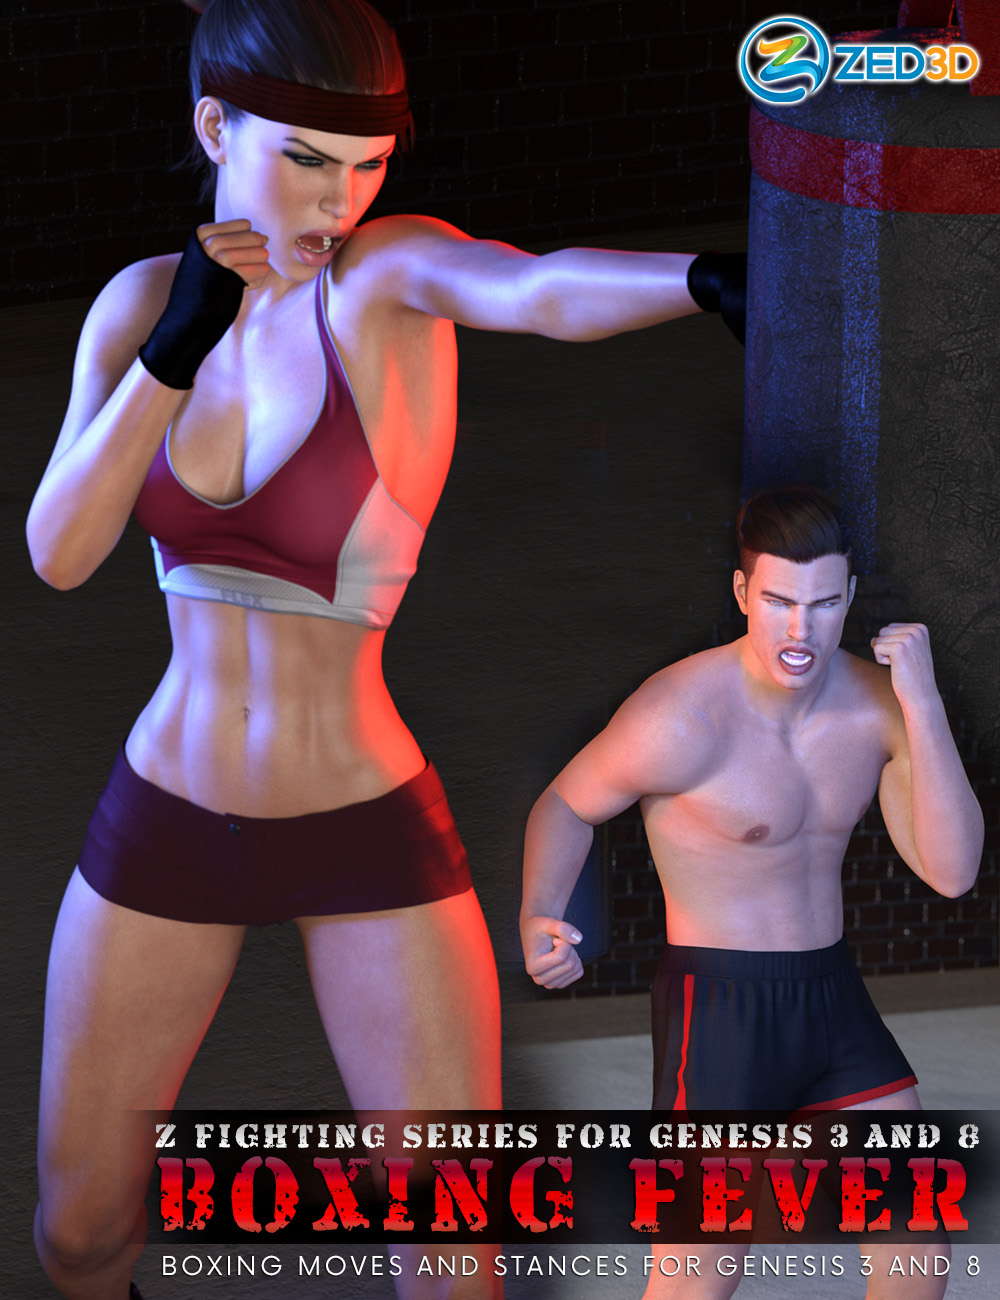 Z Fighting Series: Boxing Fever - Poses and Partials for Genesis 3 and 8 by: Zeddicuss, 3D Models by Daz 3D